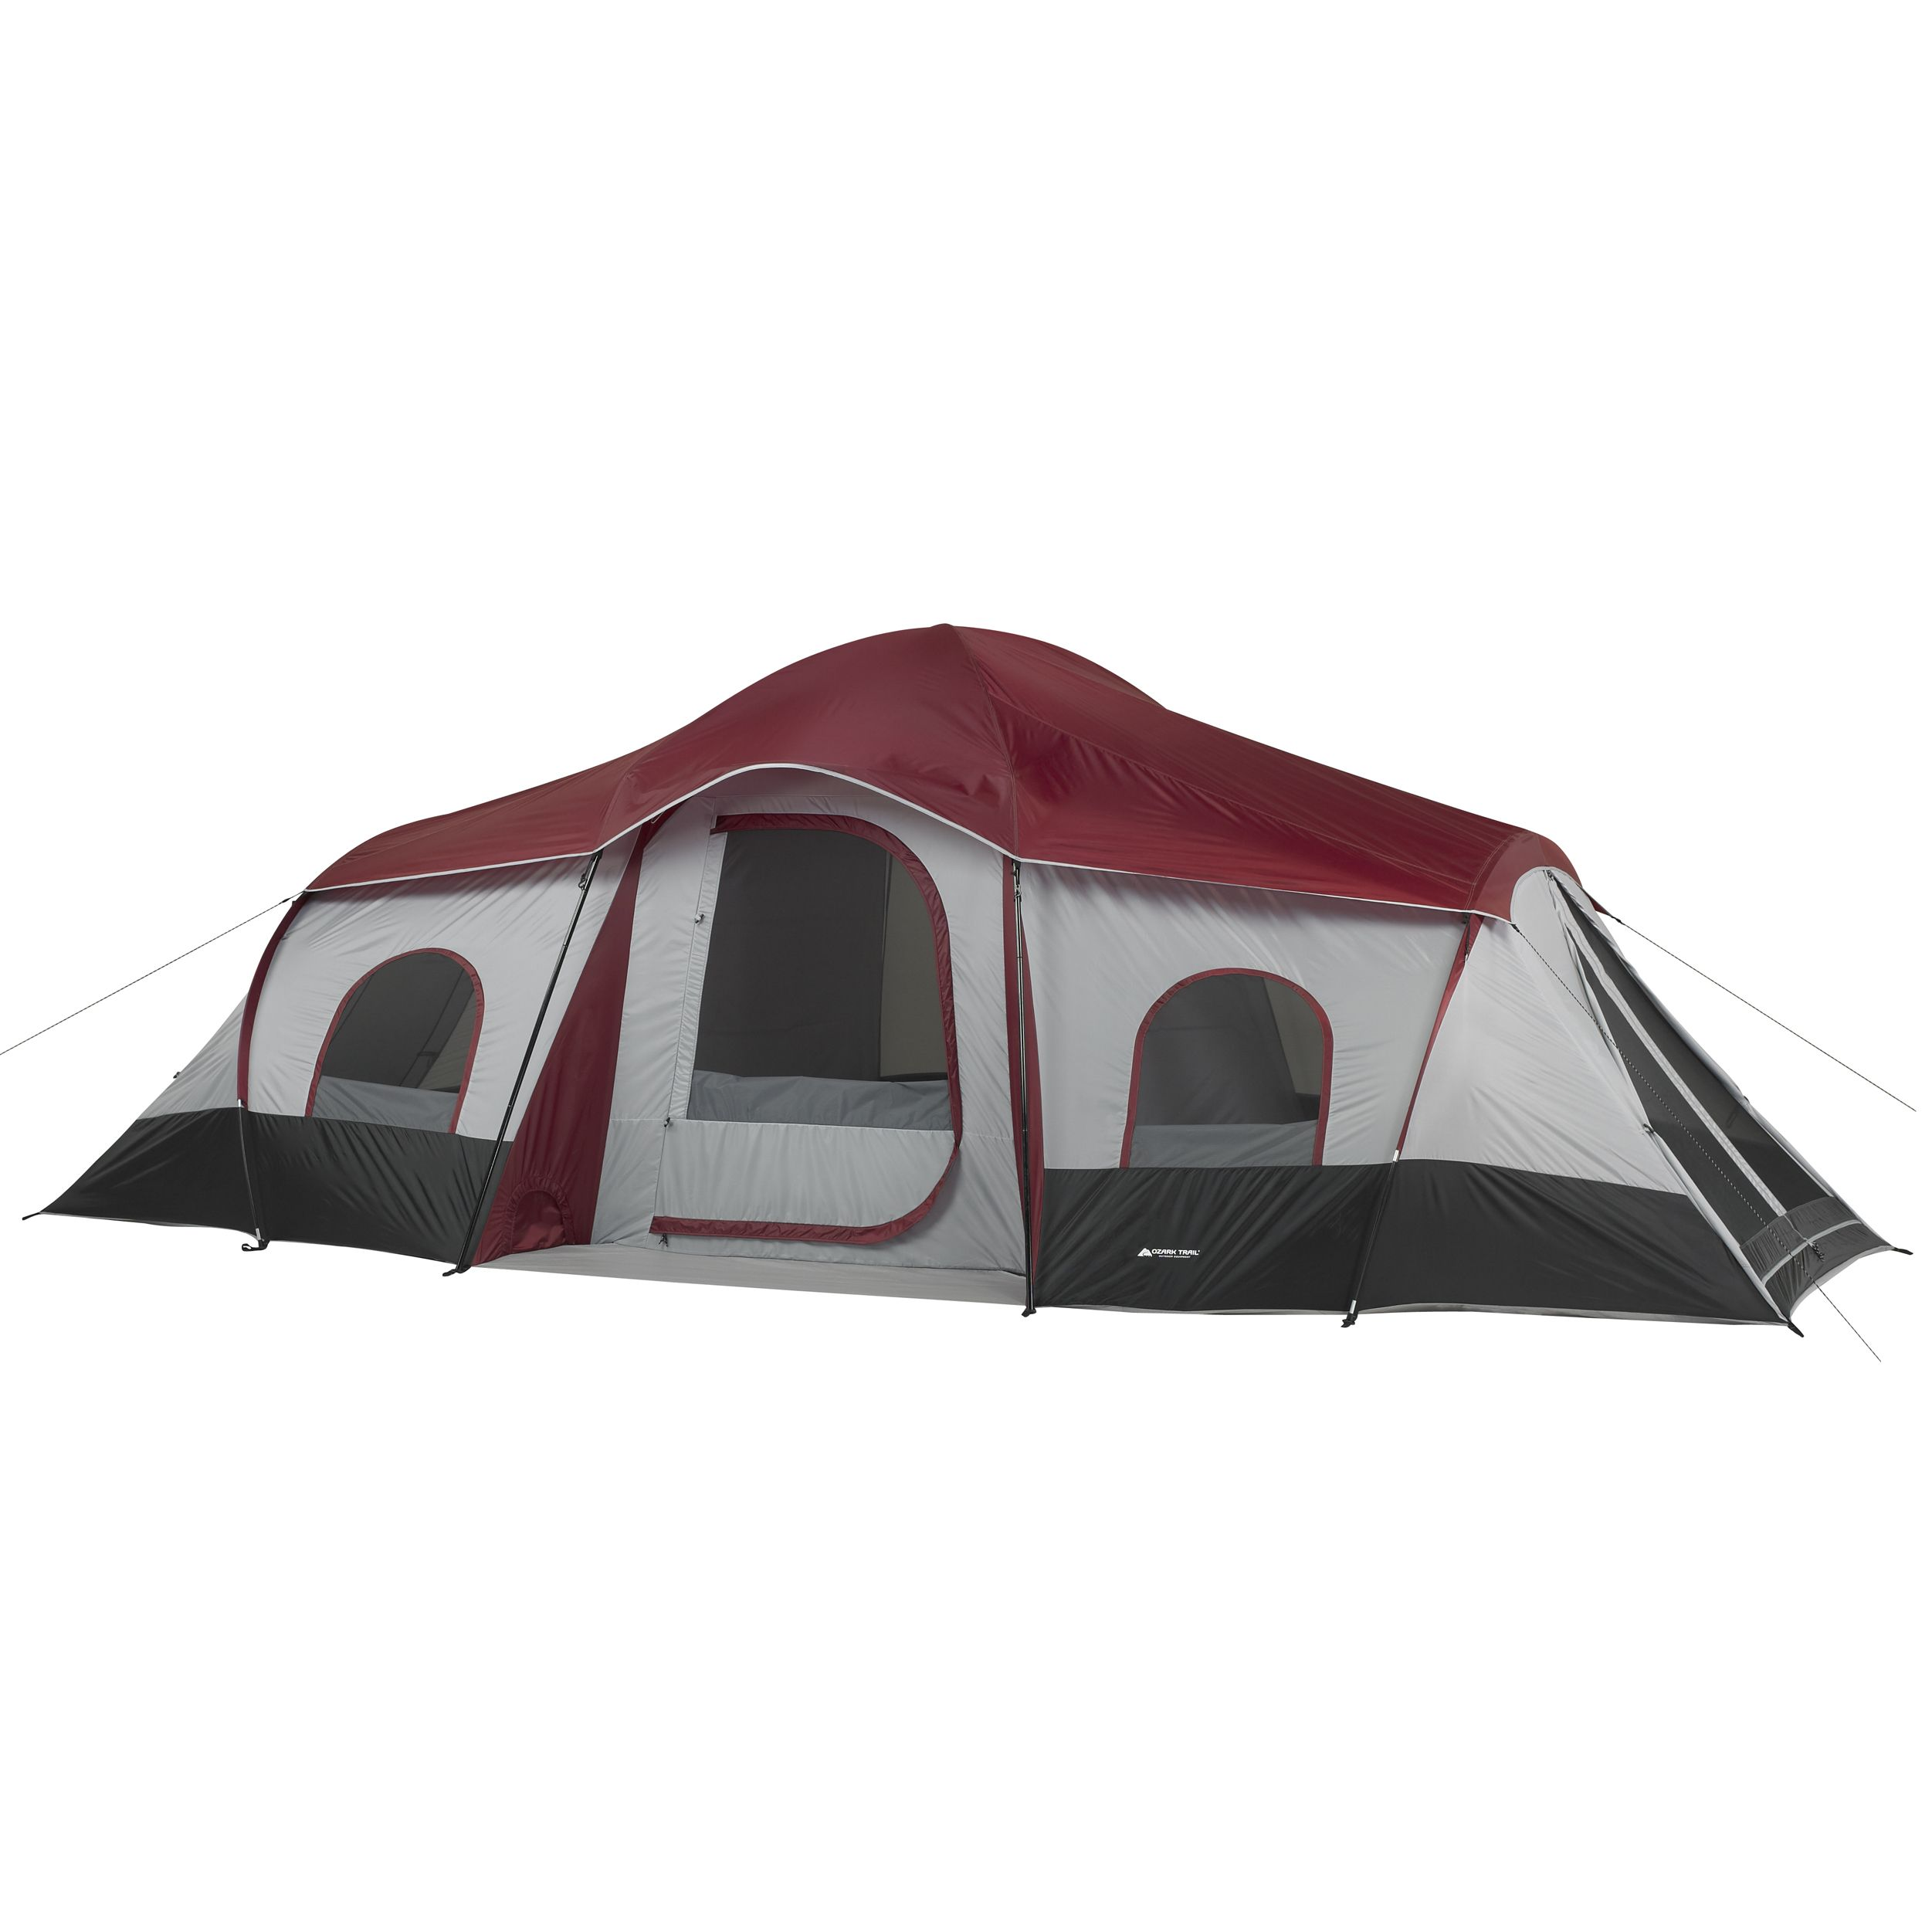 Ozark Trail 10 Person 3 Room Cabin Tent With 2 Side Entrances Walmart Com Best Tents For Camping Cabin Tent Family Tent Camping